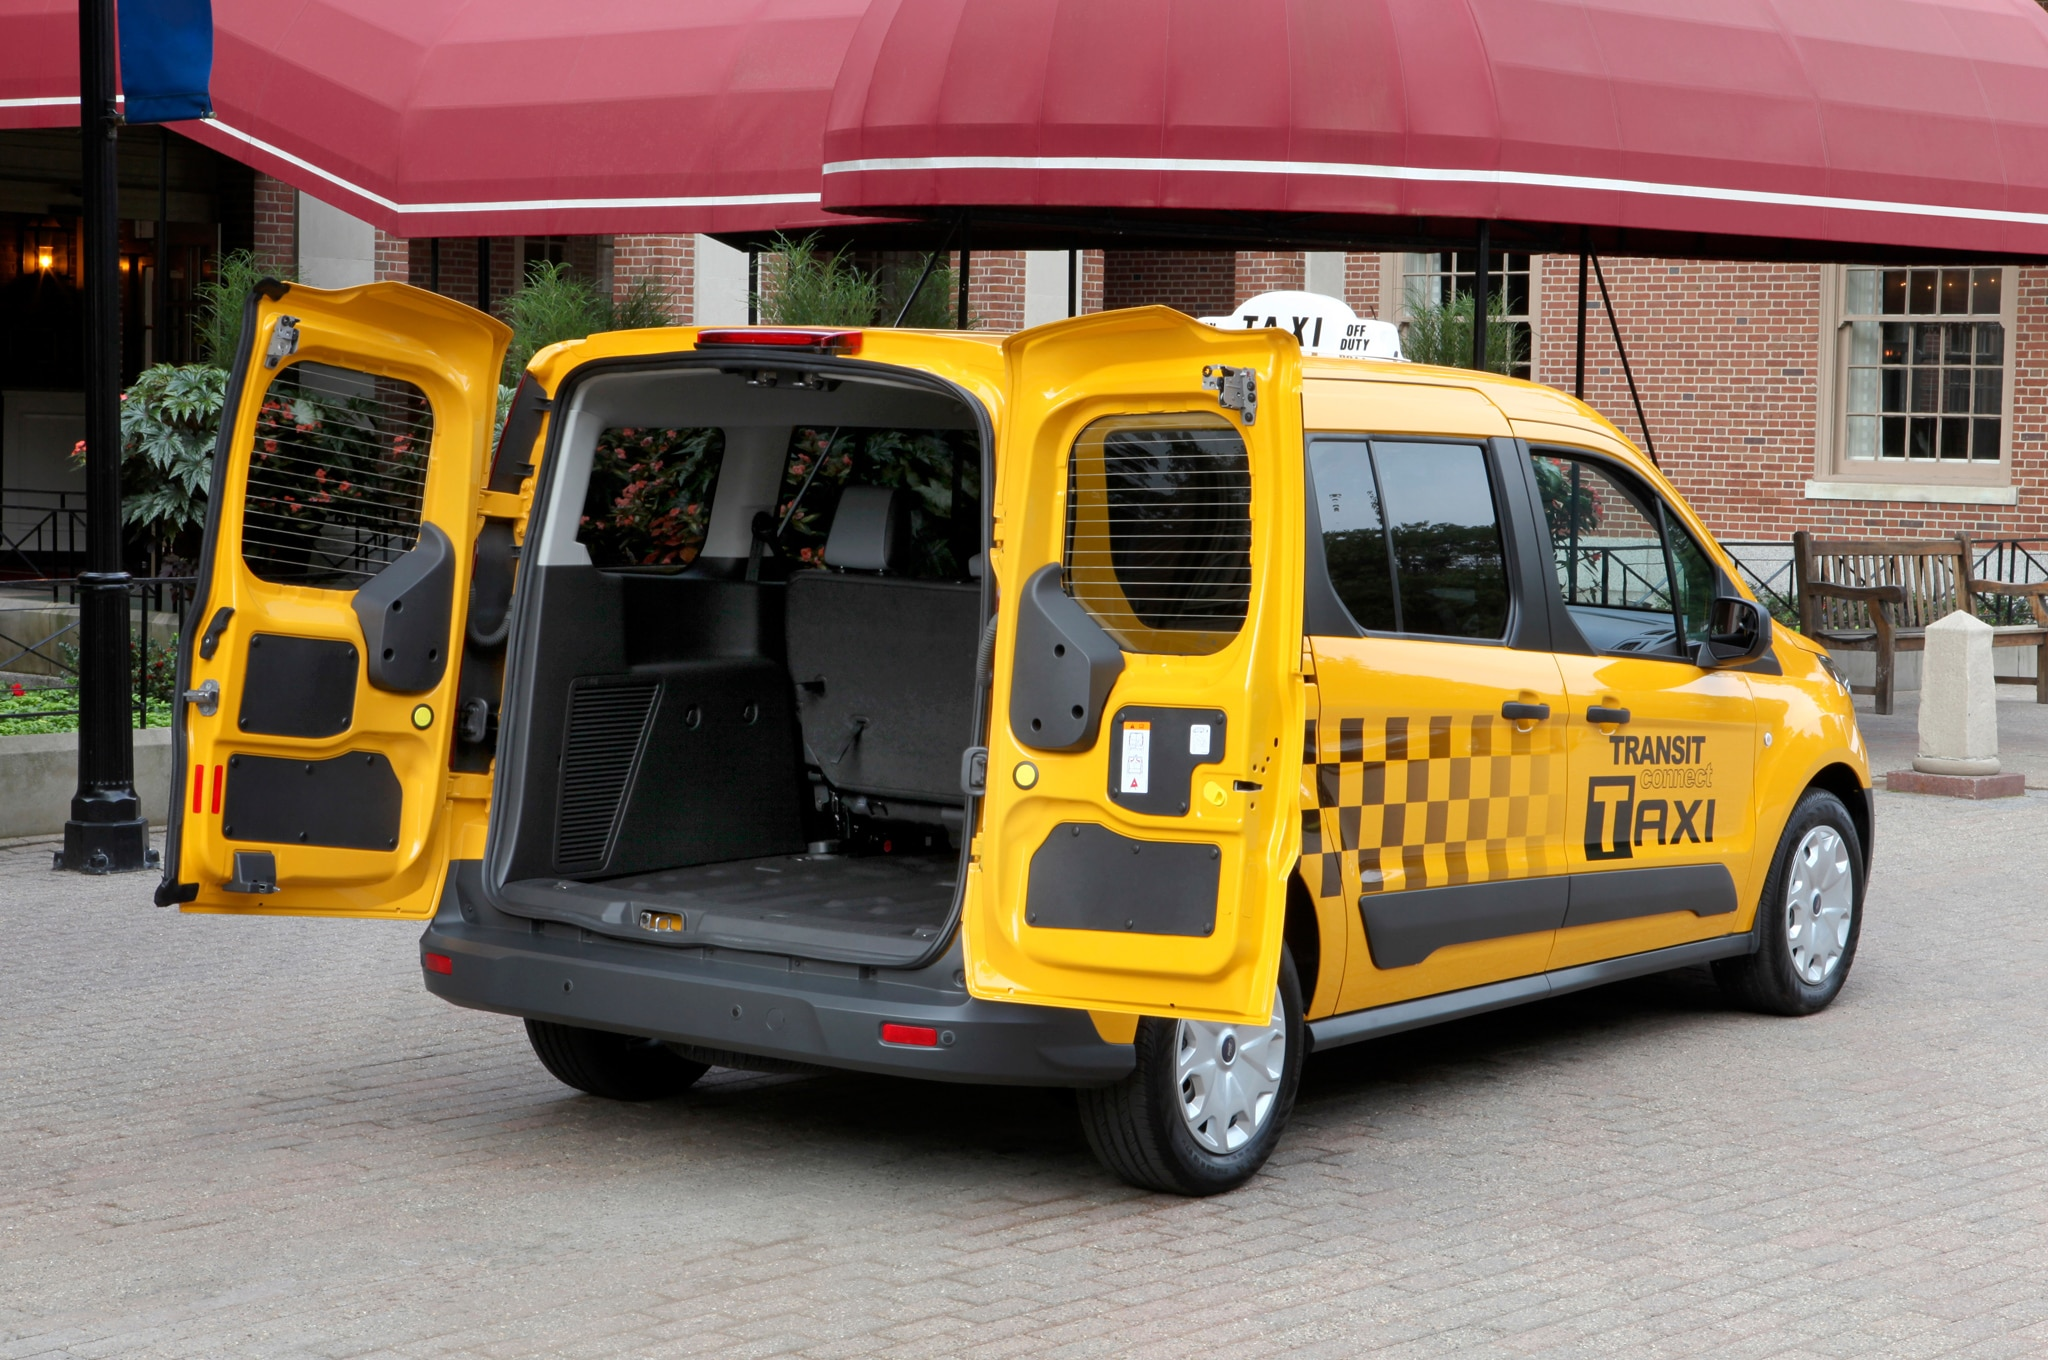 2014 Ford Transit Connect Taxi Version Shown